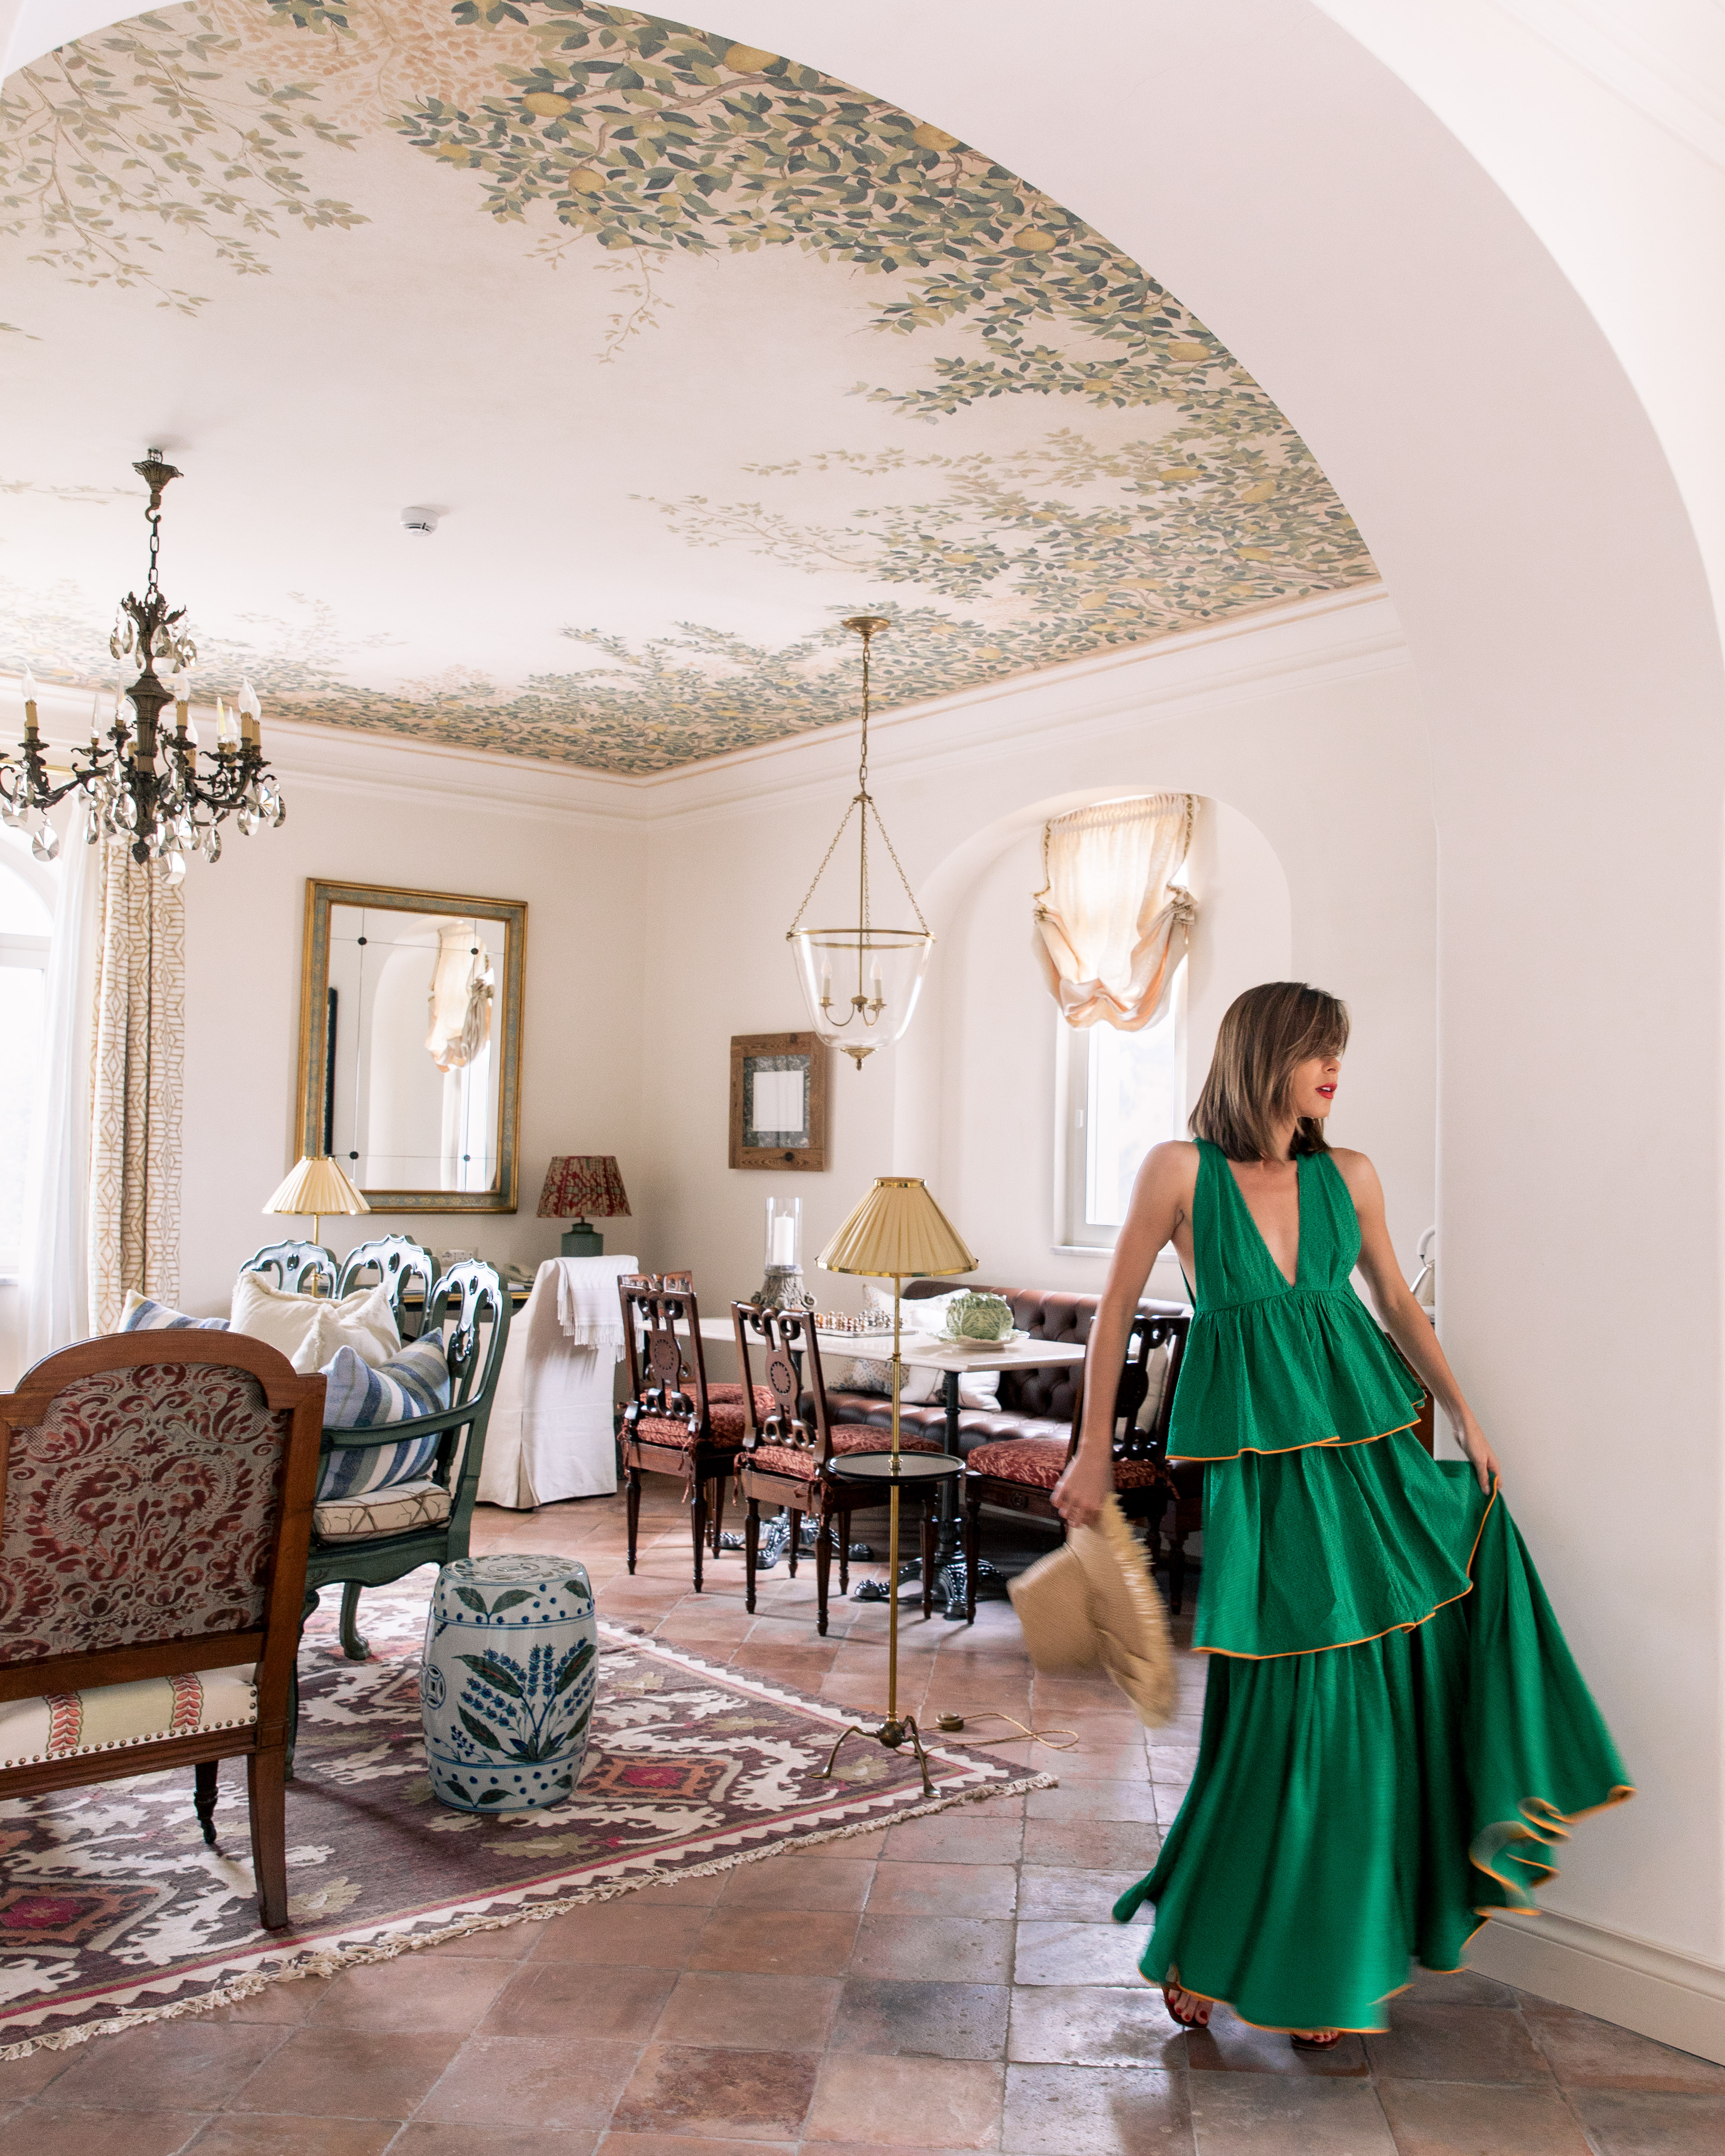 Stephanie Hill from The Style Bungalow shares the Amalfi Coast Guide Ravello